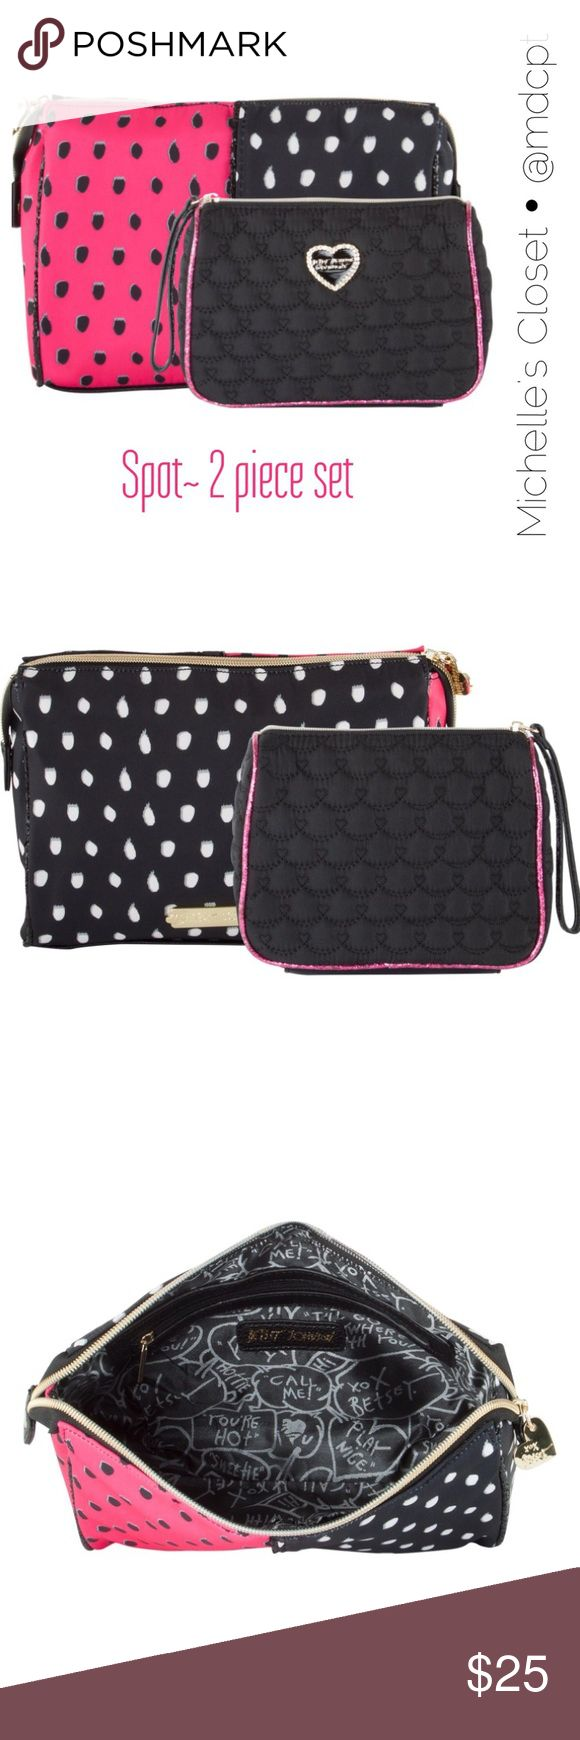 "Betsey Johnson Cosmetic Set Selling on Amazon and E-bay for $30.  2 piece set in fushia/ black.  Larger bag with snap sides is 9x6x3"".  Wristlet pouch with glitter piping is 8x6x2.5"".  Cosmo. Betsey Johnson Bags Cosmetic Bags & Cases"